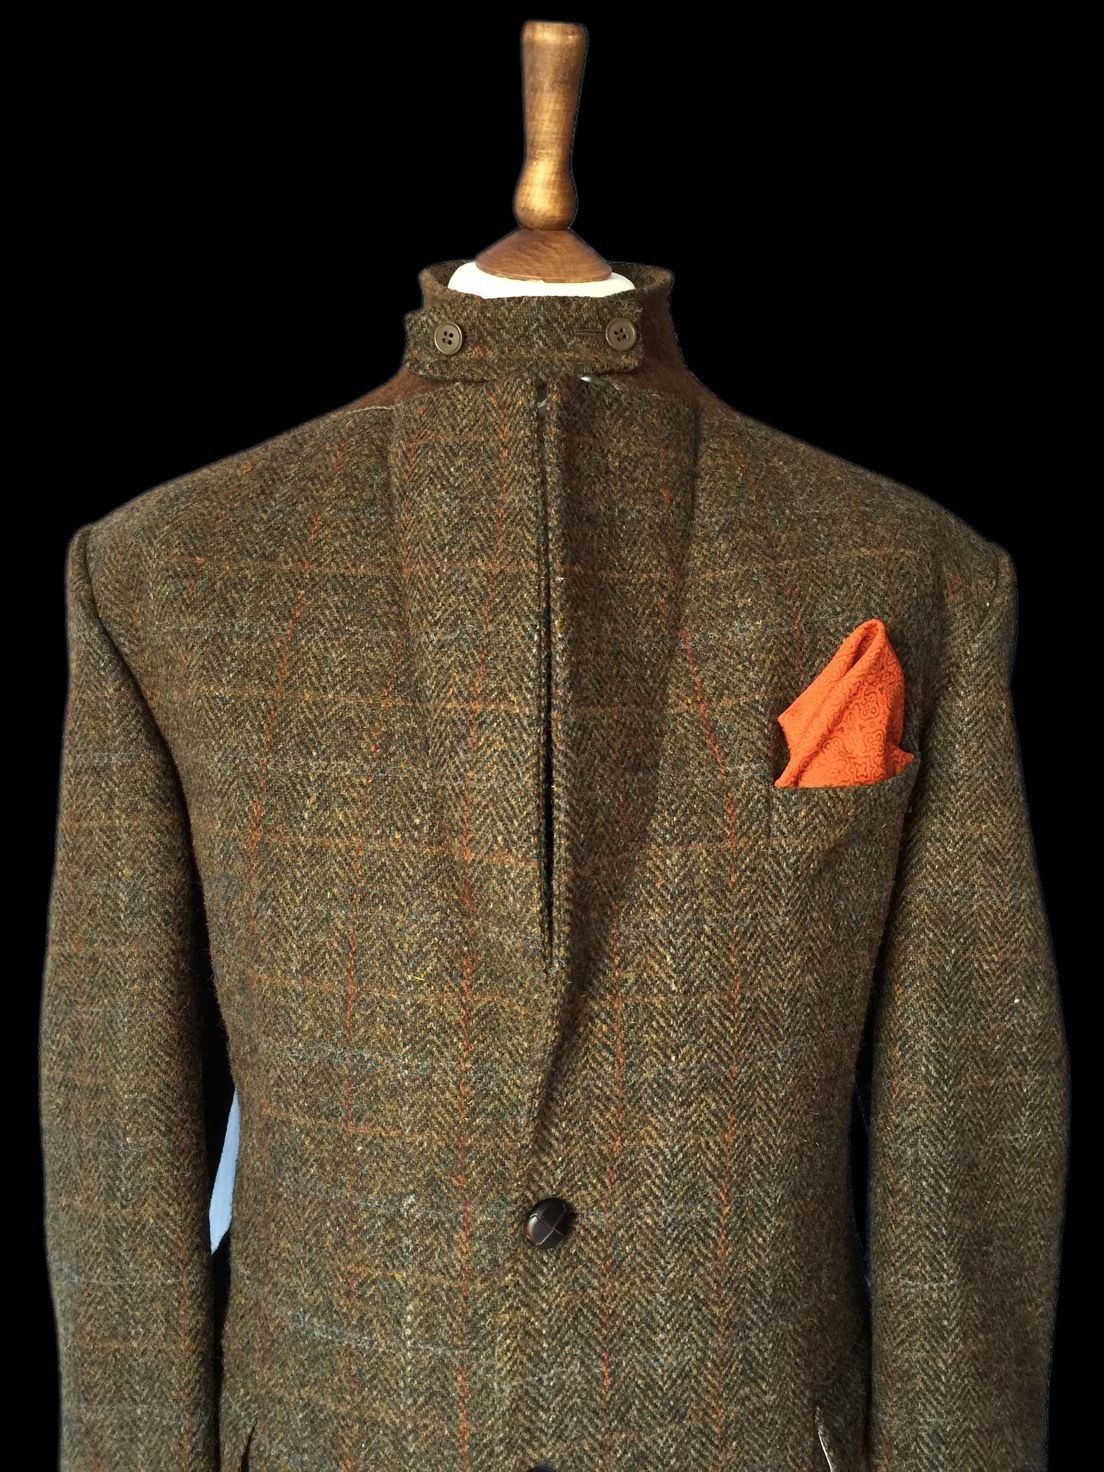 Harris Tweed 44 Regular Gentlemans Sports Hunting Jacket Ebay Hunting Clothes Mens Hunting Jacket Jackets Men Fashion